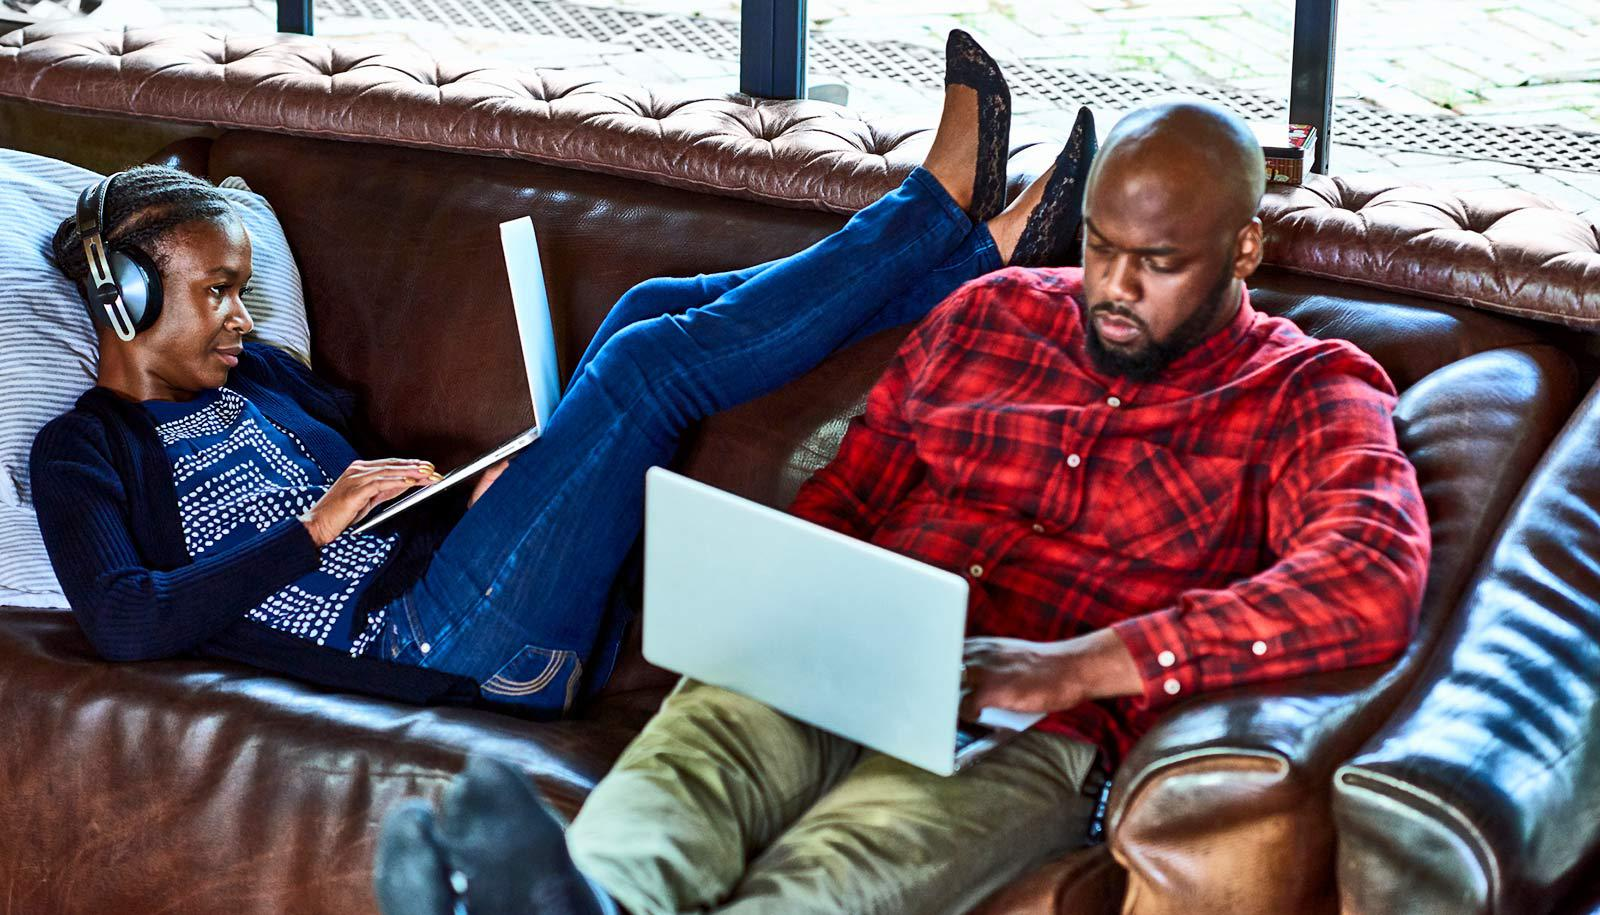 two people use laptops on couch